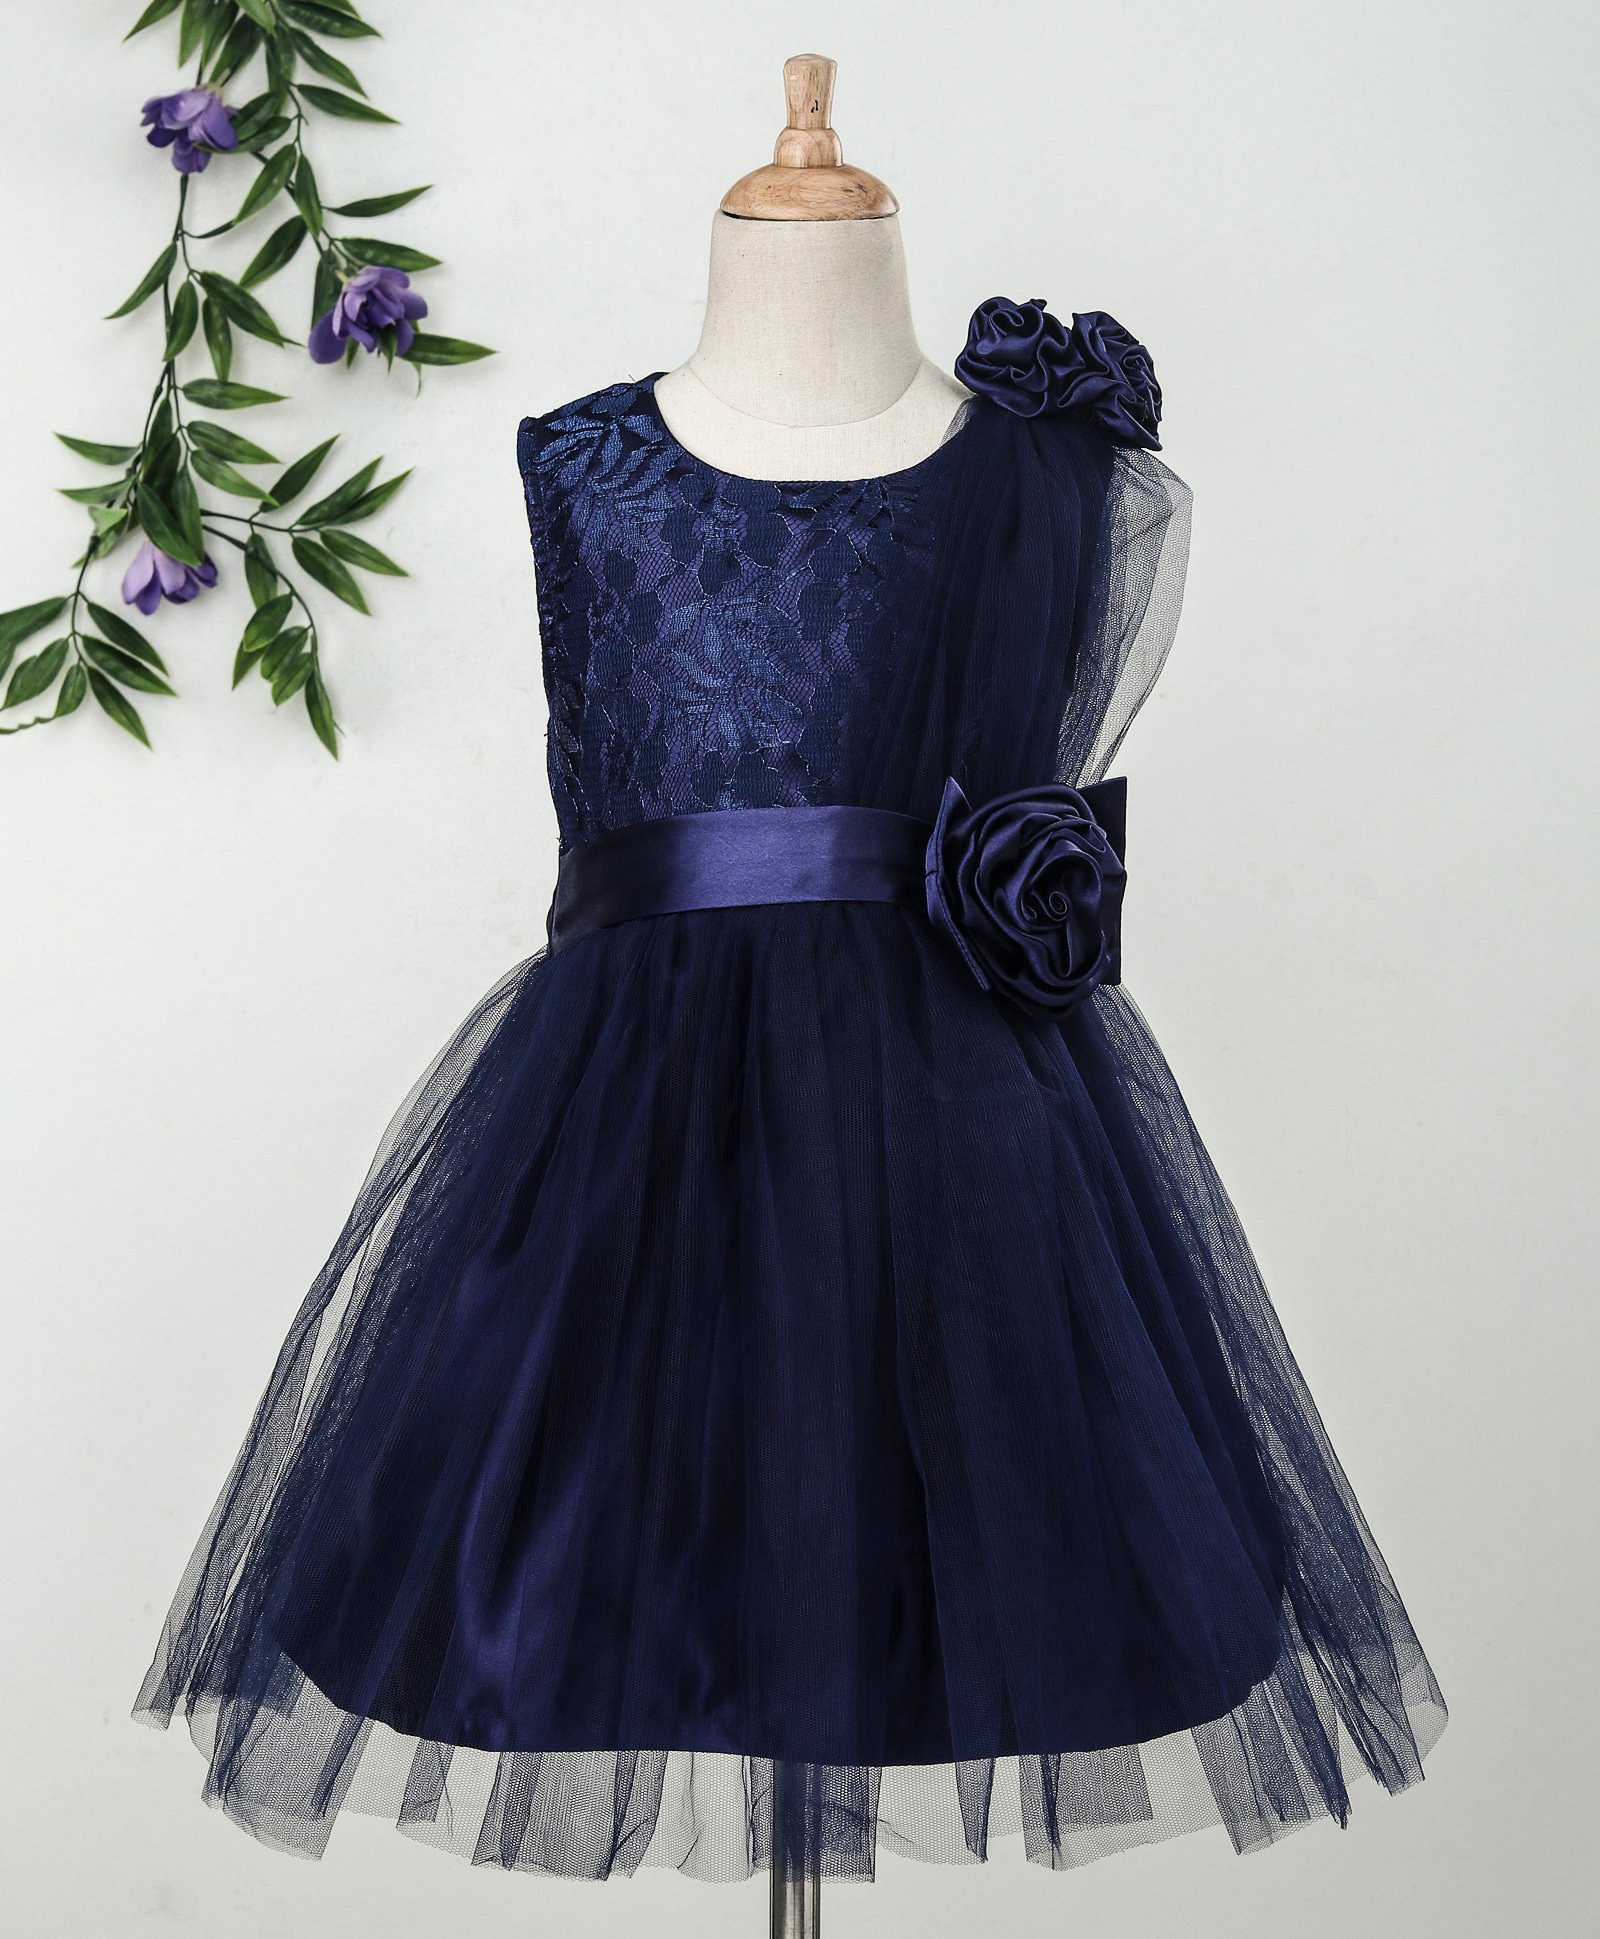 ee8e73bc43 Buy Babyhug Sleeveless Party Frock 3D Satin Flowers Navy Blue for Girls  (3-4 Years) Online in India, Shop at FirstCry.com - 2502660